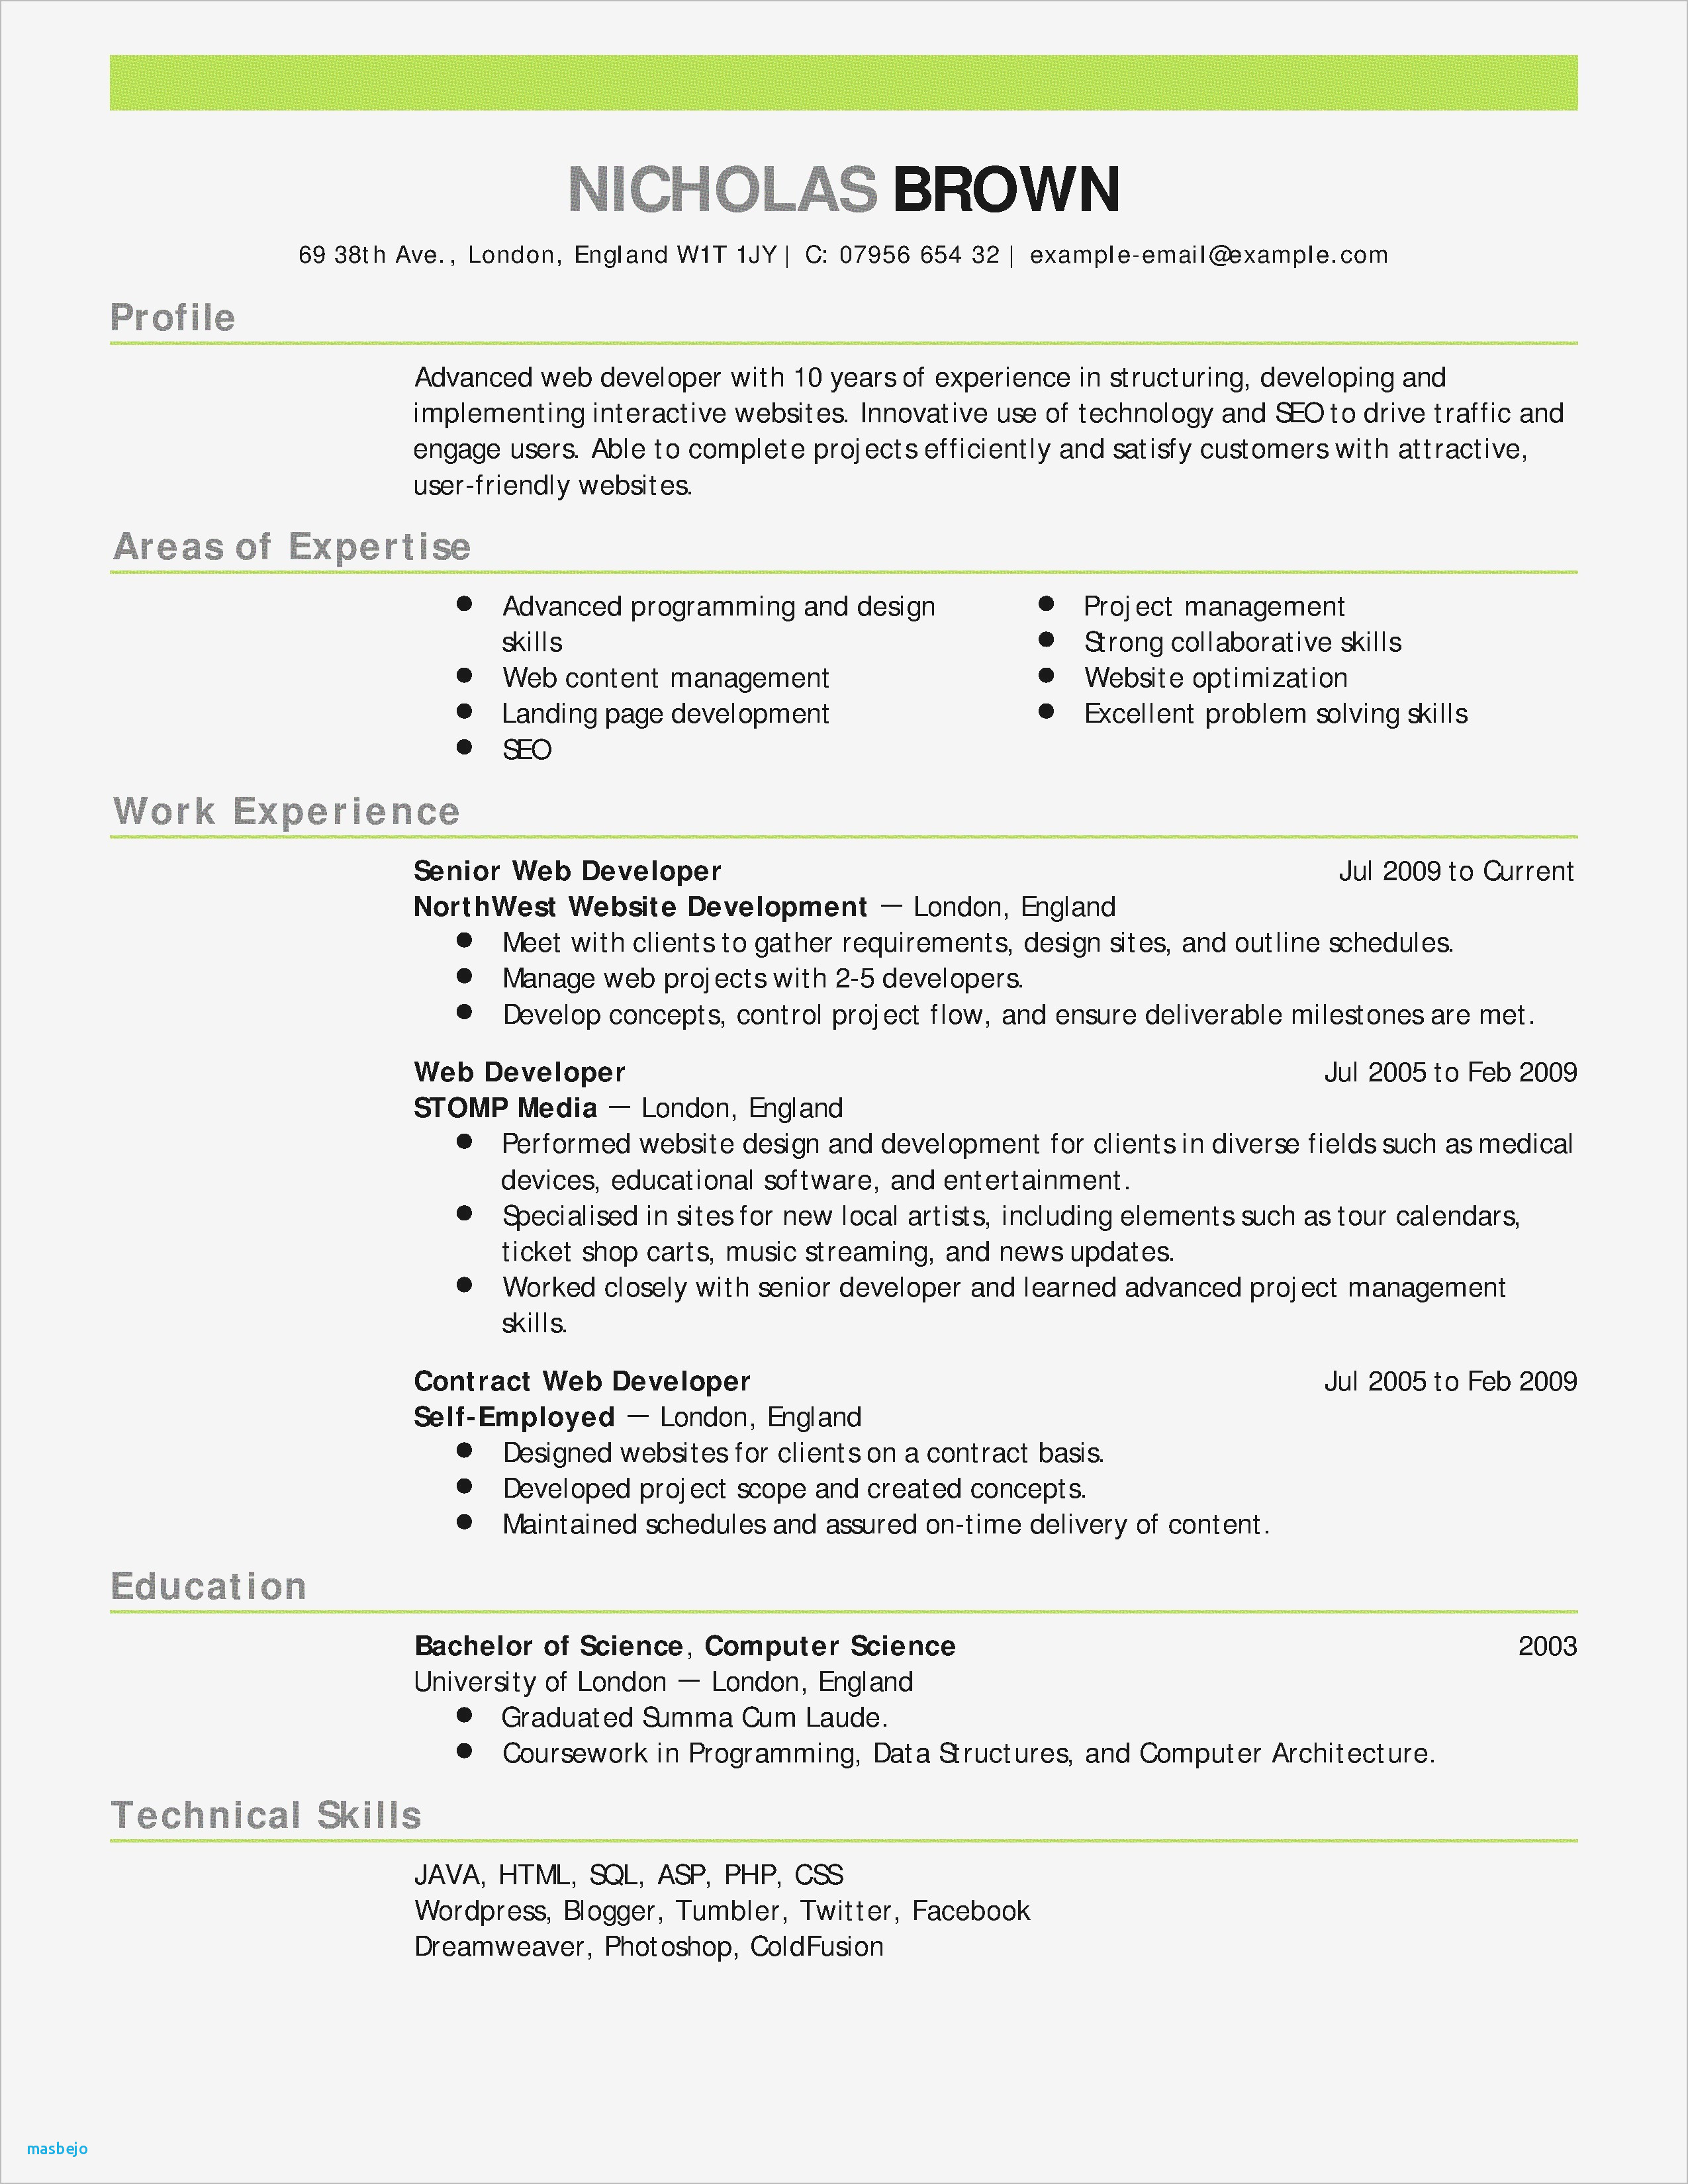 cover letter review Collection-Resume Review Service Elegant Cover Letter Writing Service Awesome Paralegal Resume 0d 19-s